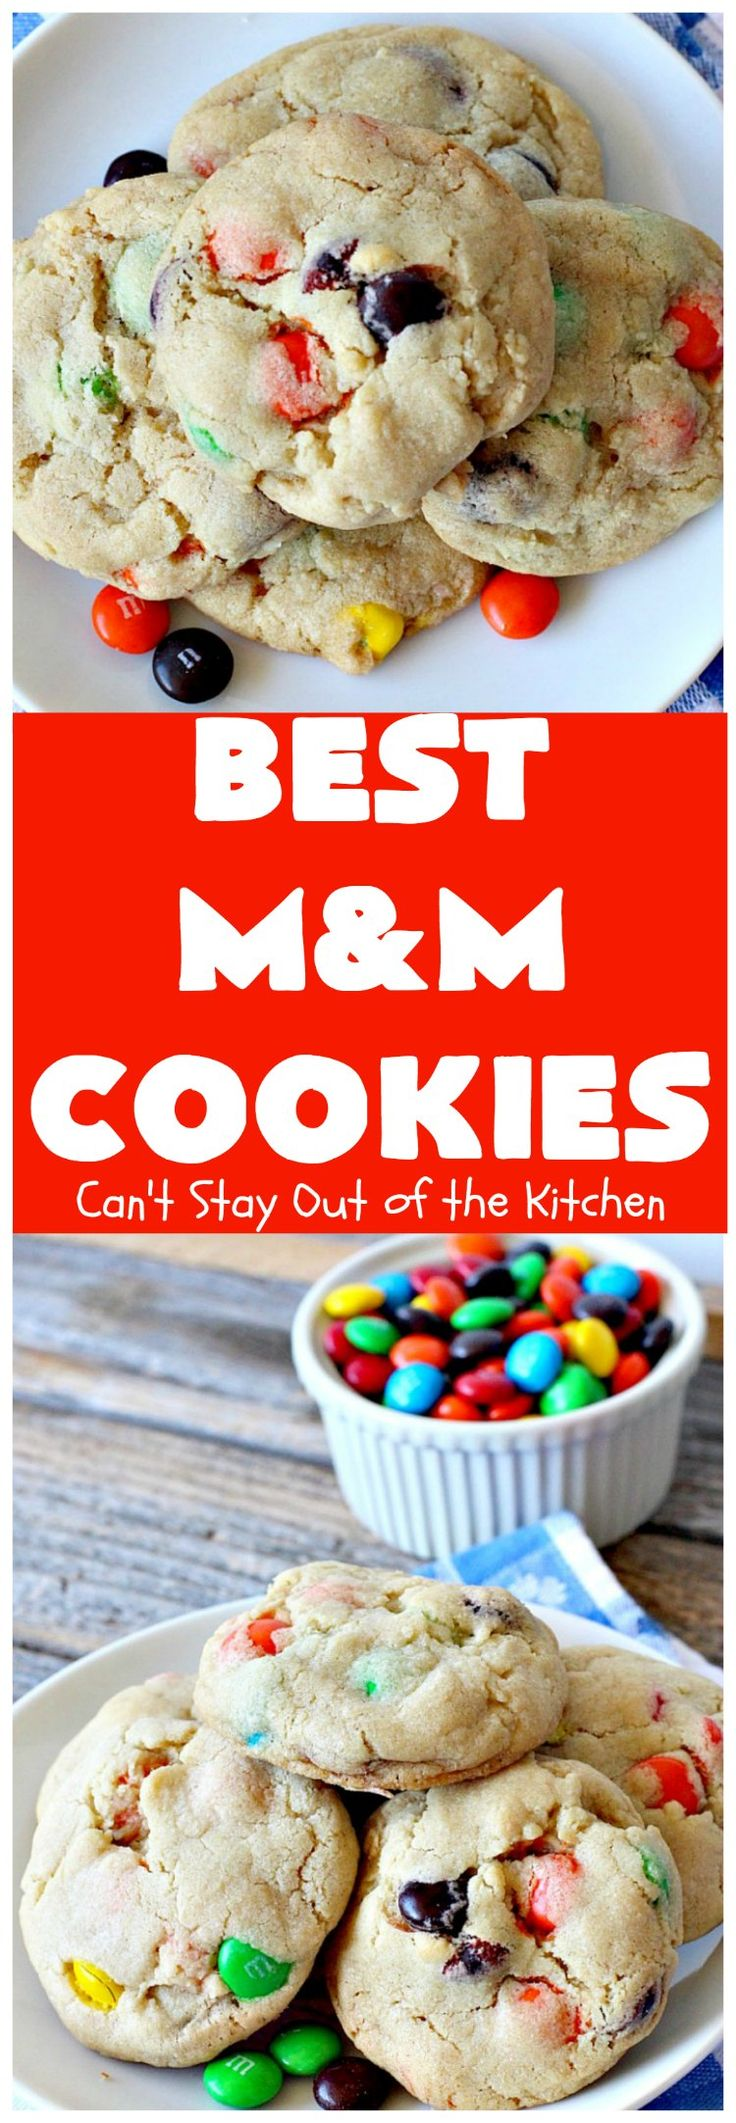 BEST M&M Cookies | These fabulous cookies are divine! They start with copycat Mrs. Fields chocolate chip cookies but substitute #M&Ms. They are so heavenly. #dessert